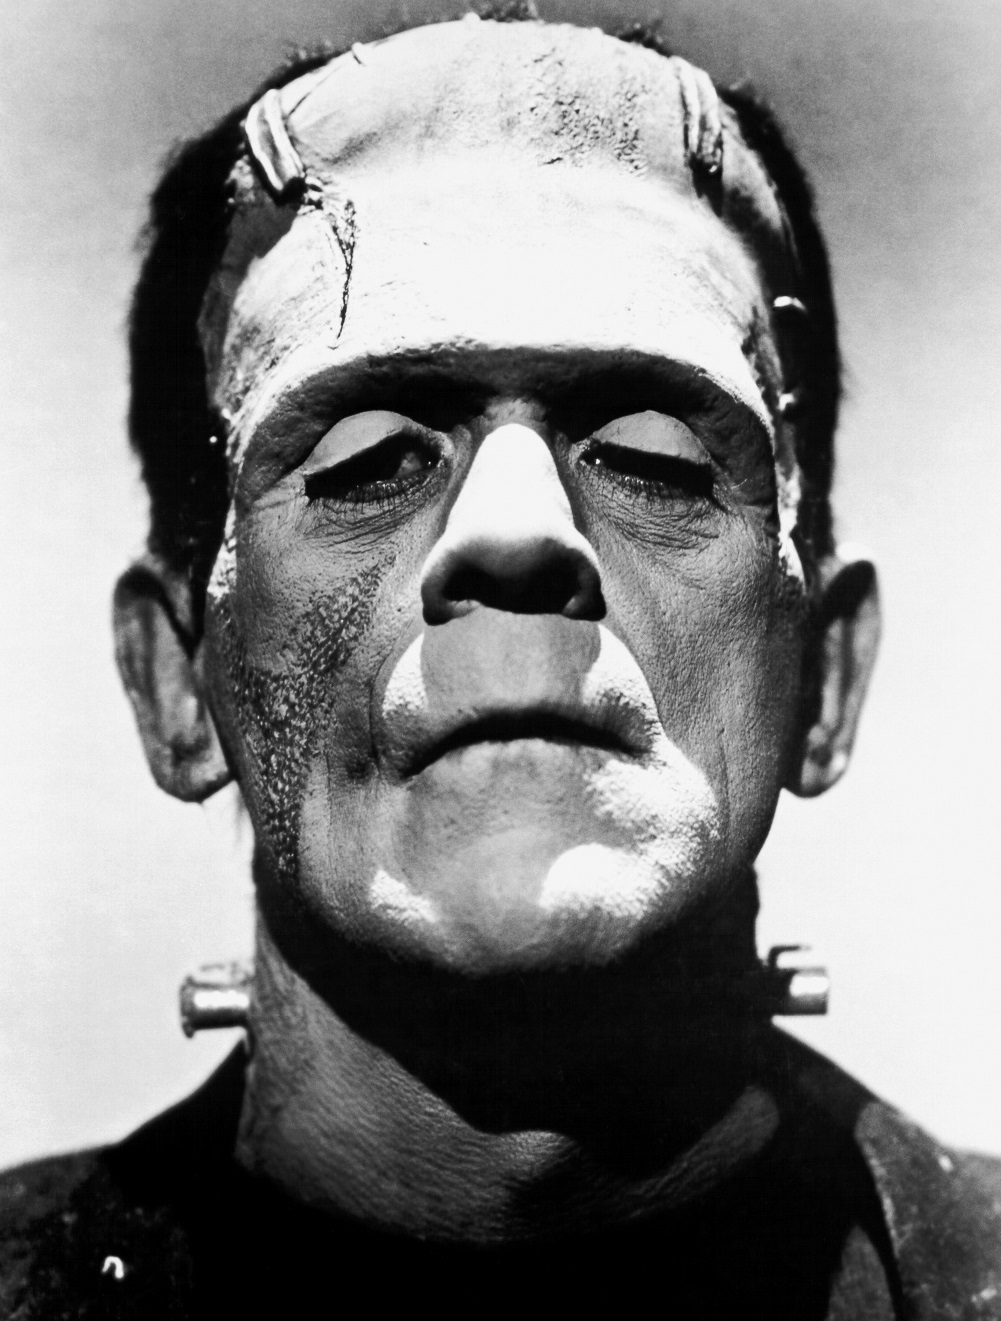 frankenstein creates a living being who